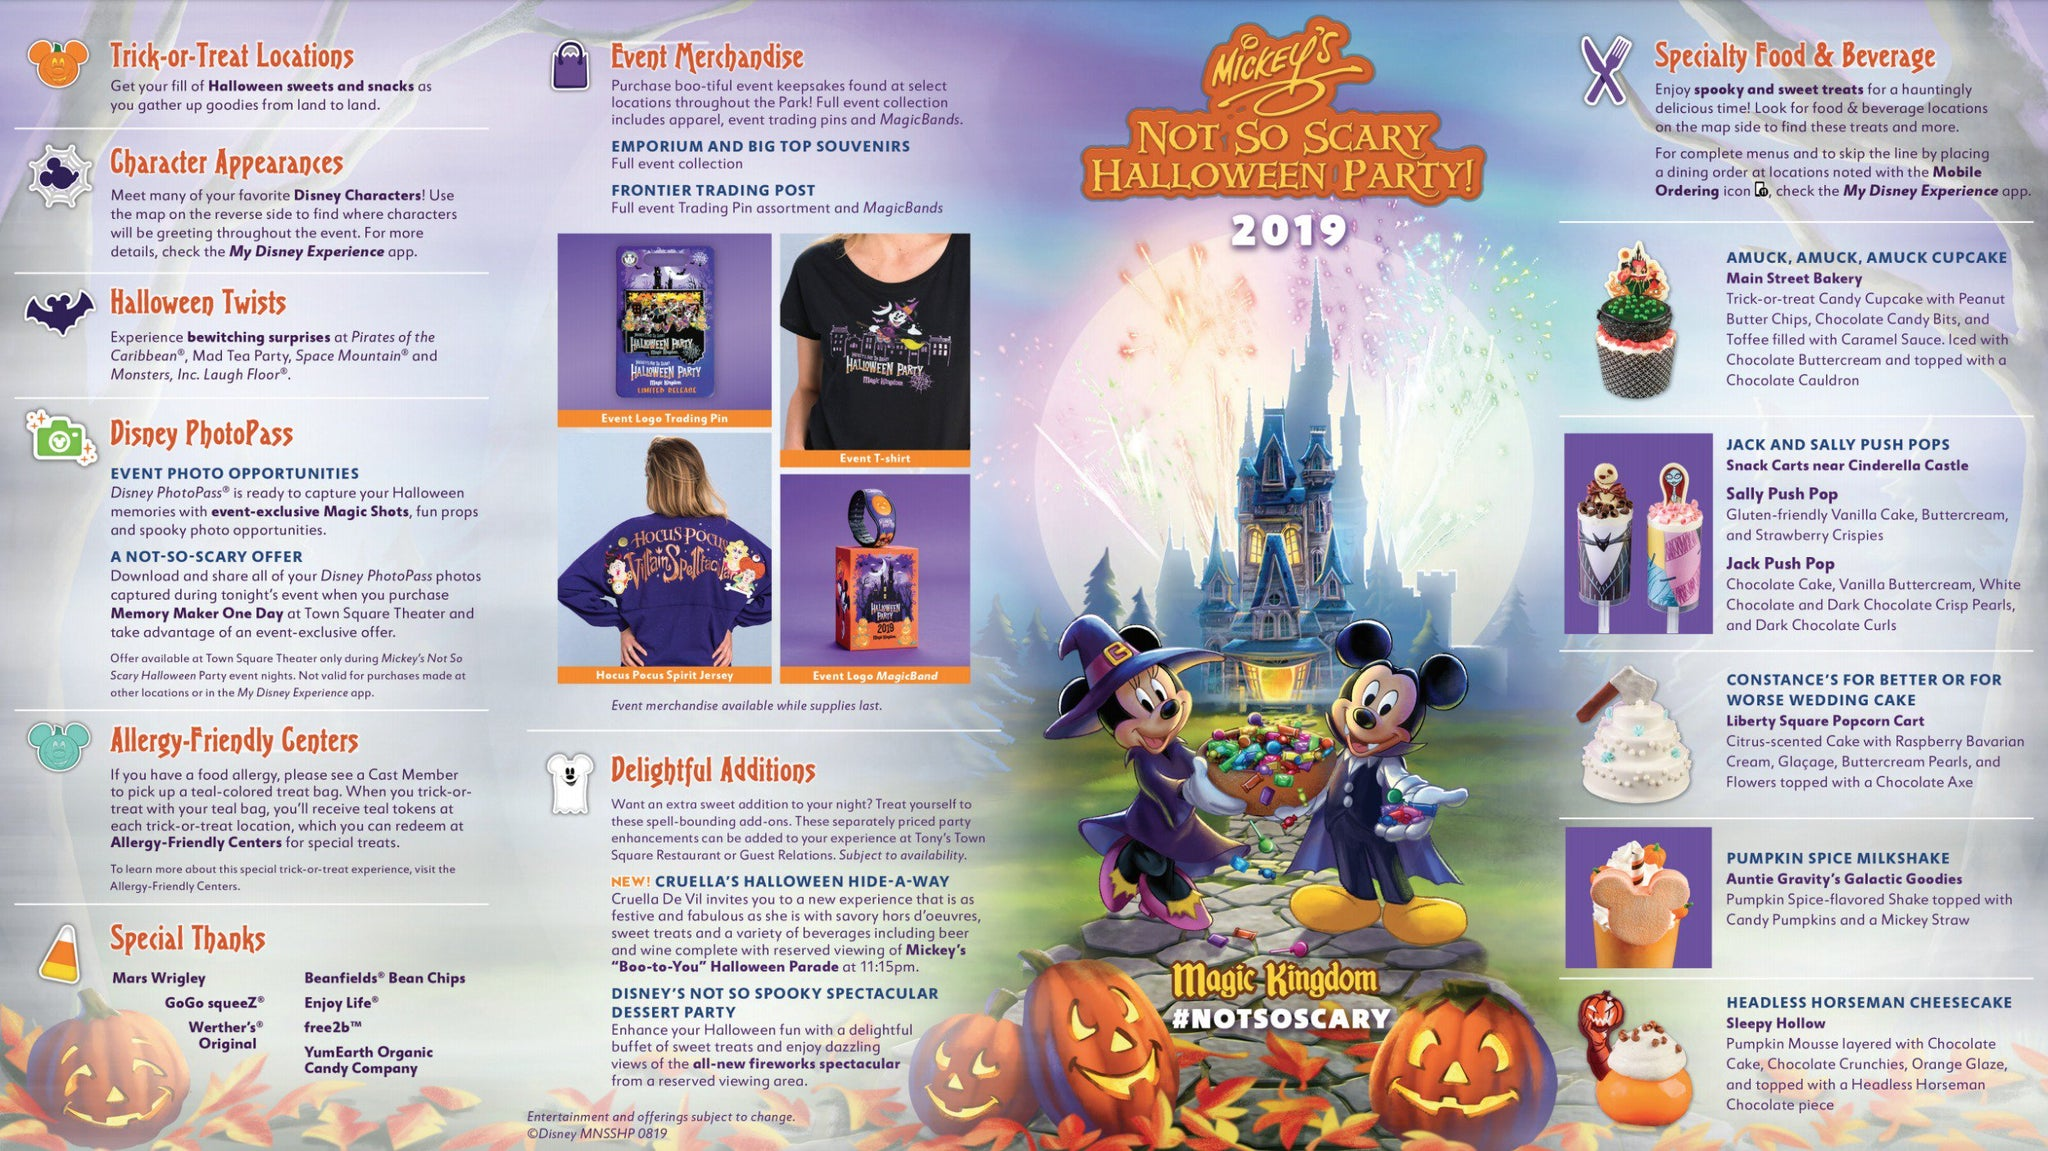 Mickey's Not So Scary Halloween Party Map 2019